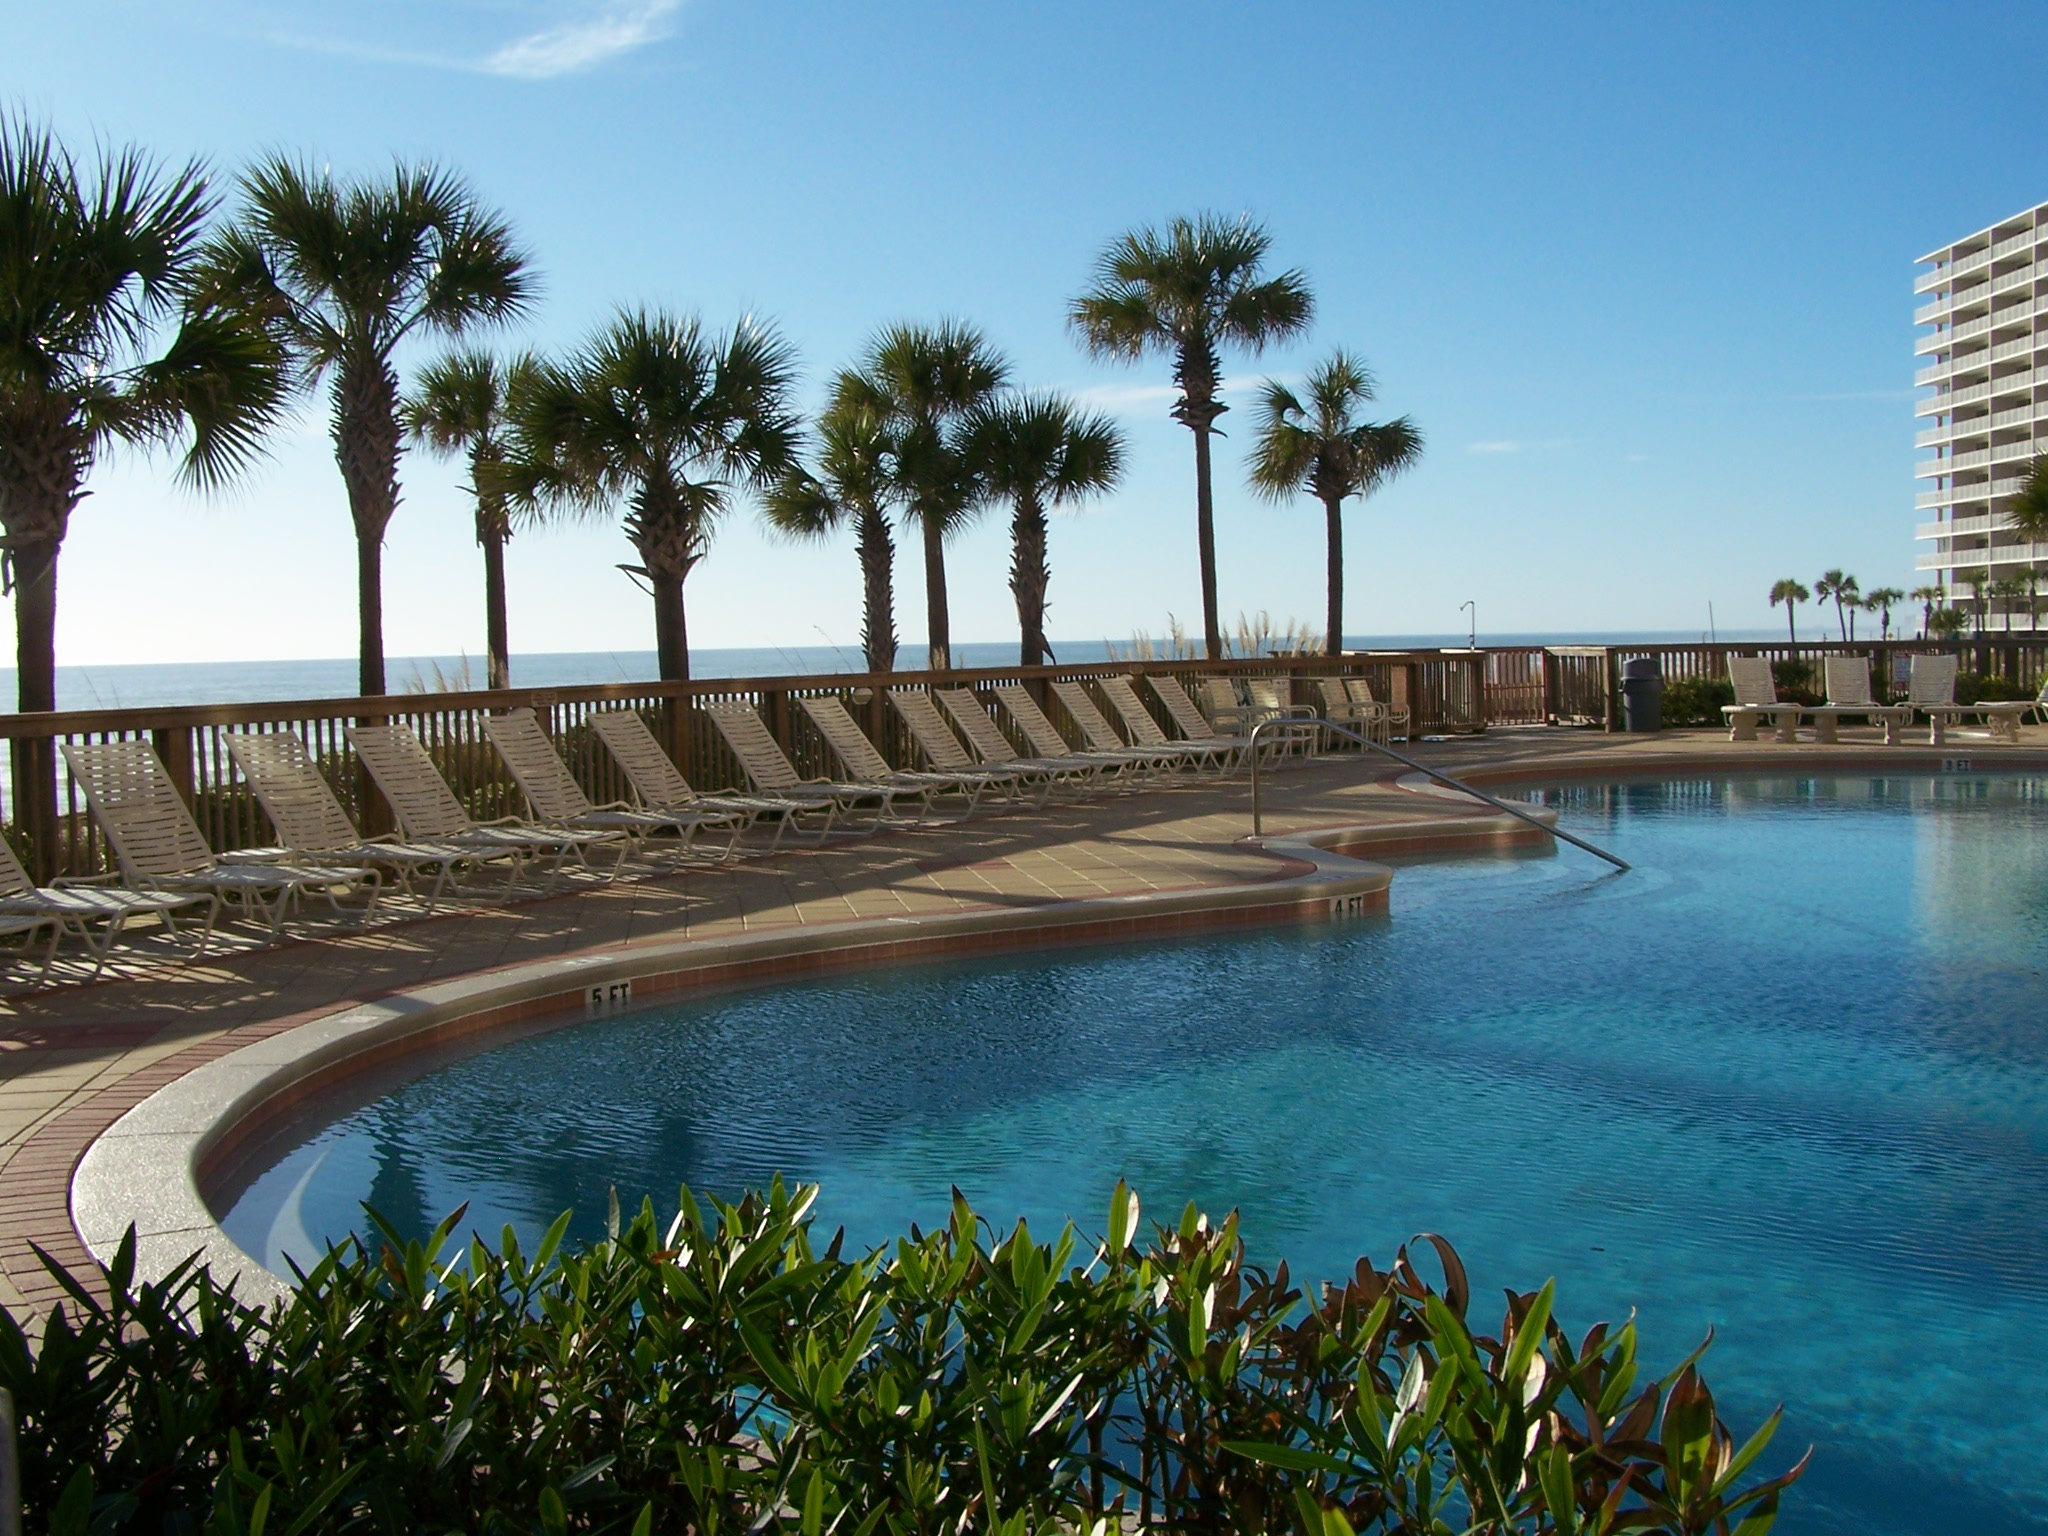 Panama City Beach Condos List Of Vacation Condos For Rent